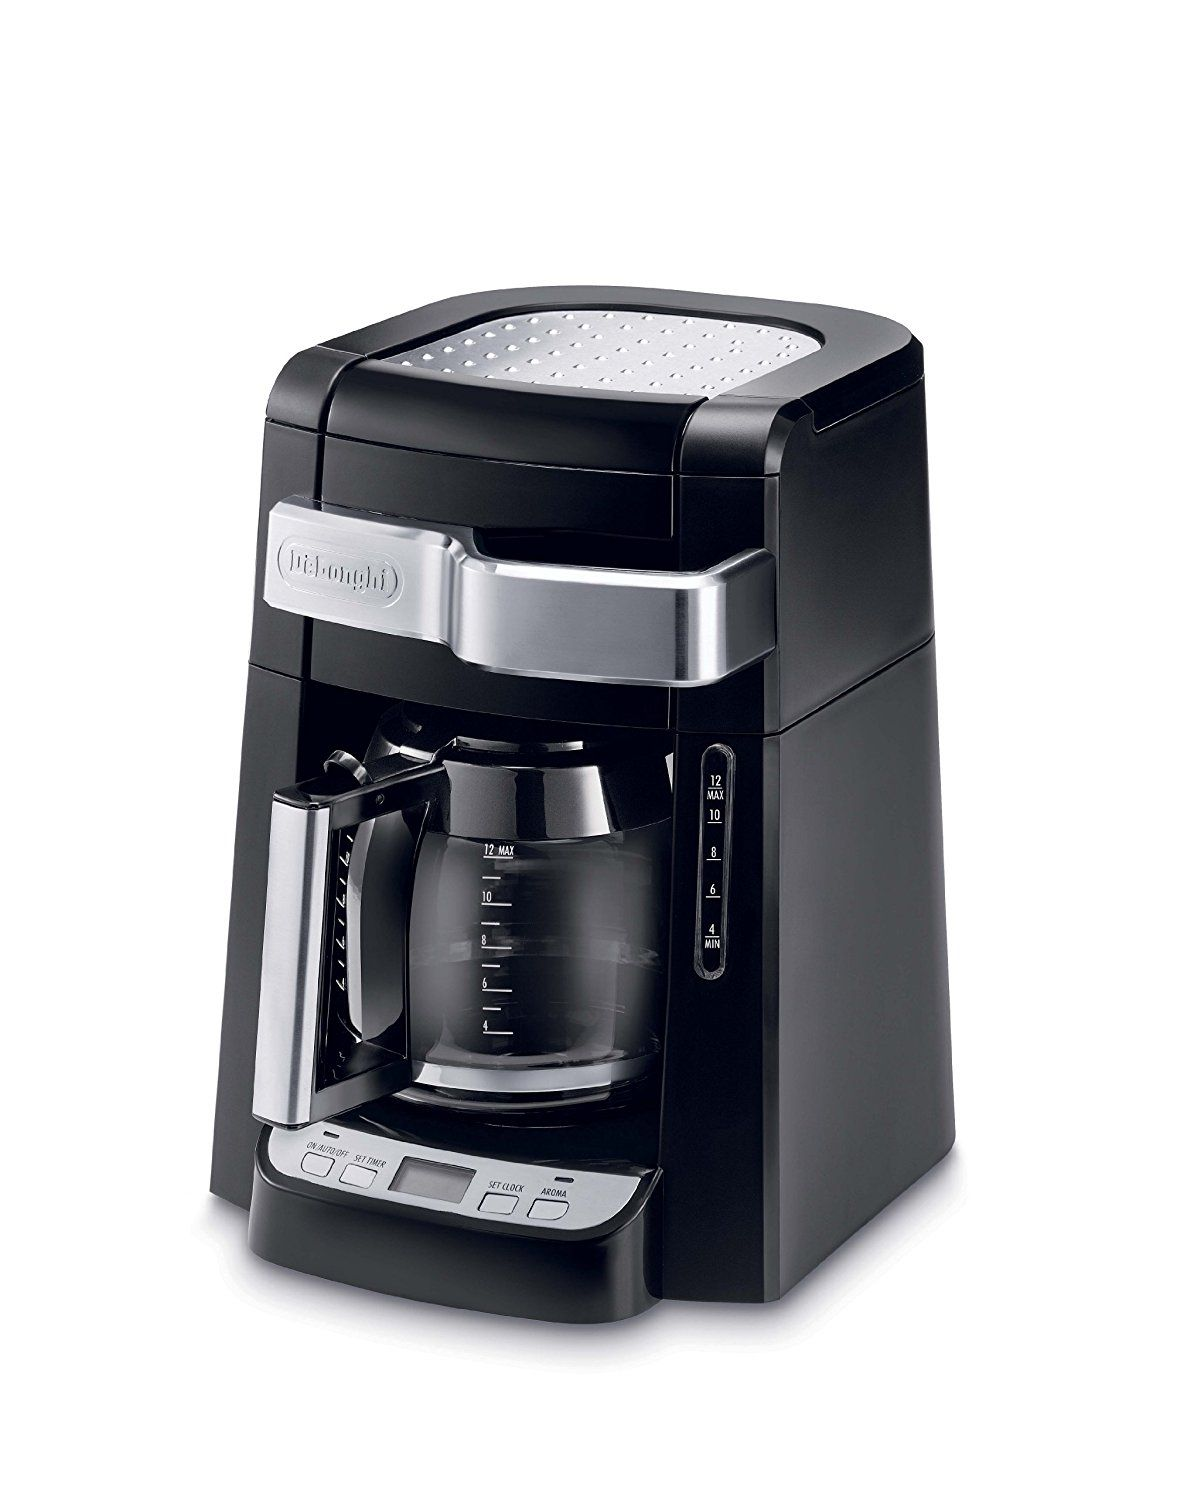 DeLonghi DCF2212T 12Cup Glass Carafe Drip Coffee Maker